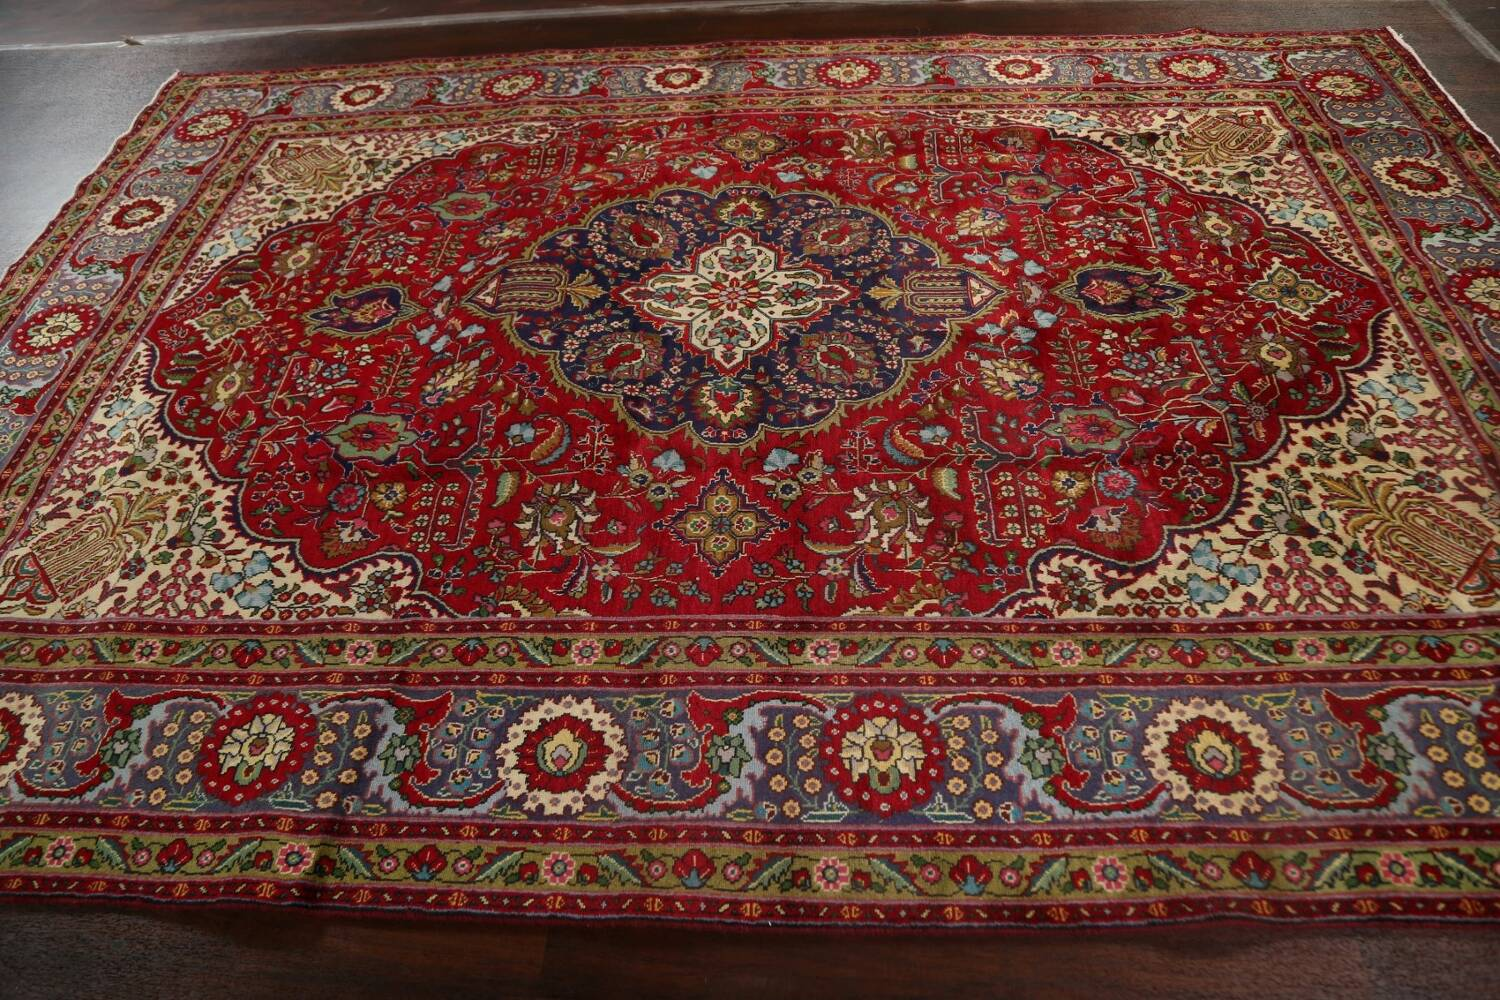 Floral Red Tabriz Persian Area Rug 8x12 image 18